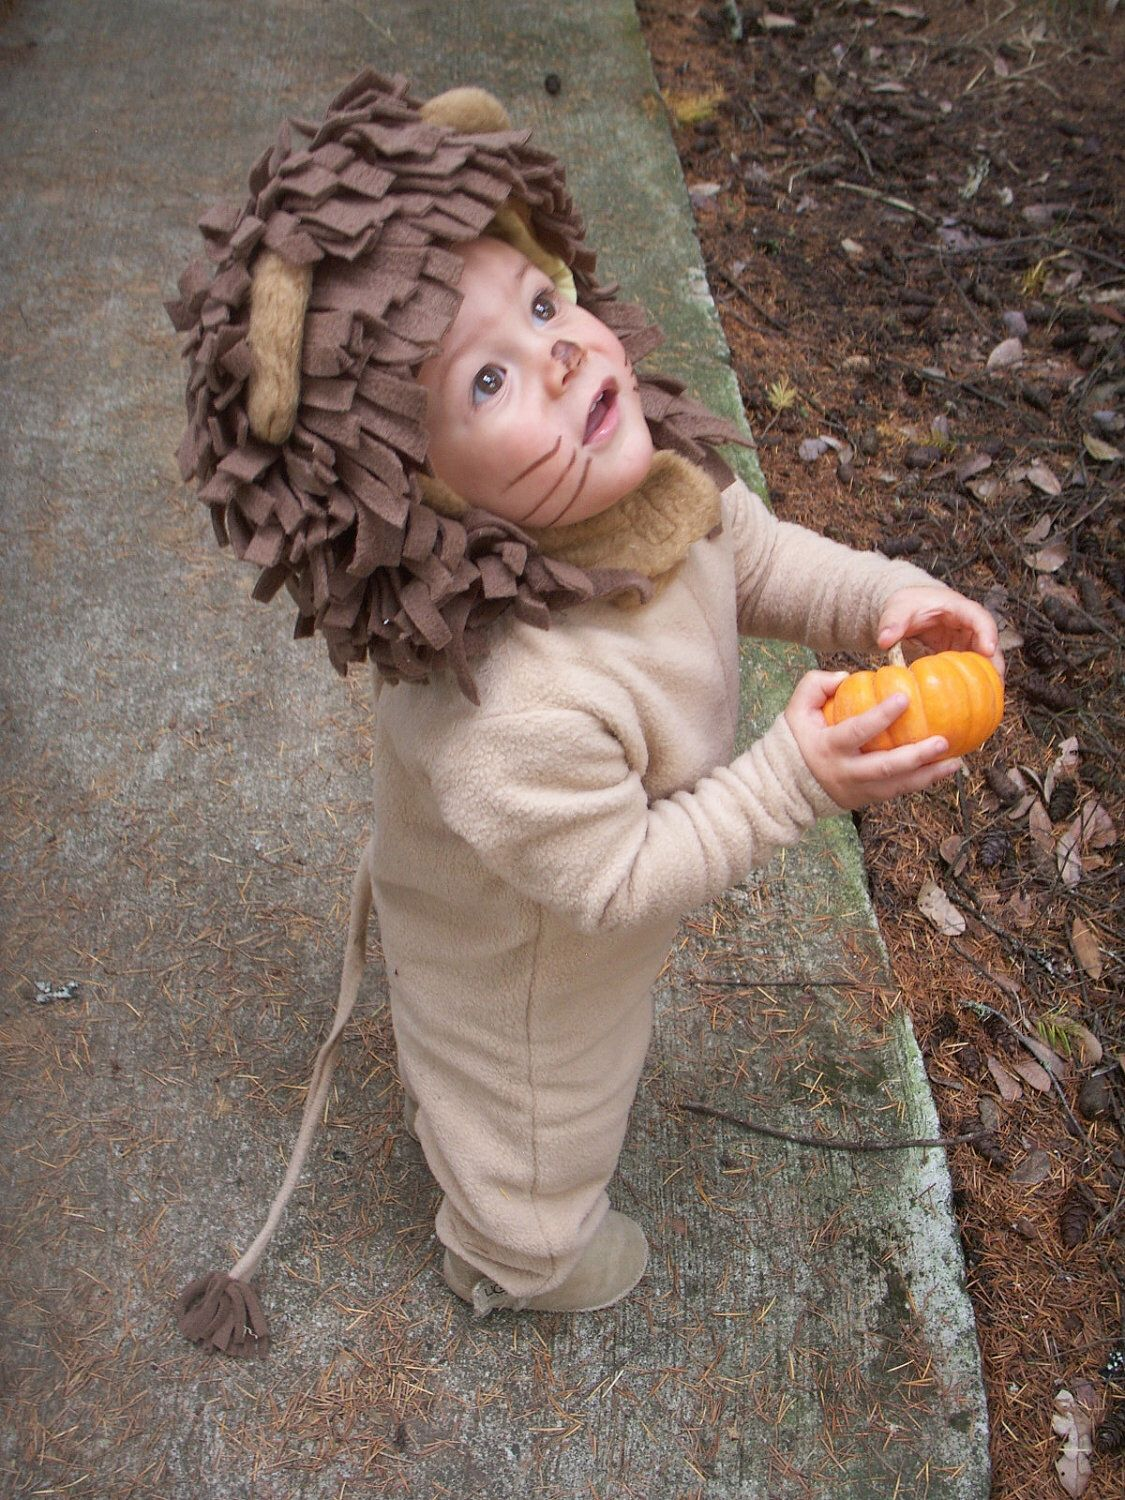 Lion Costume, Toddler Boy Halloween Costume, Toddler Girl Costume, kids Costume, Complete Children's Costume